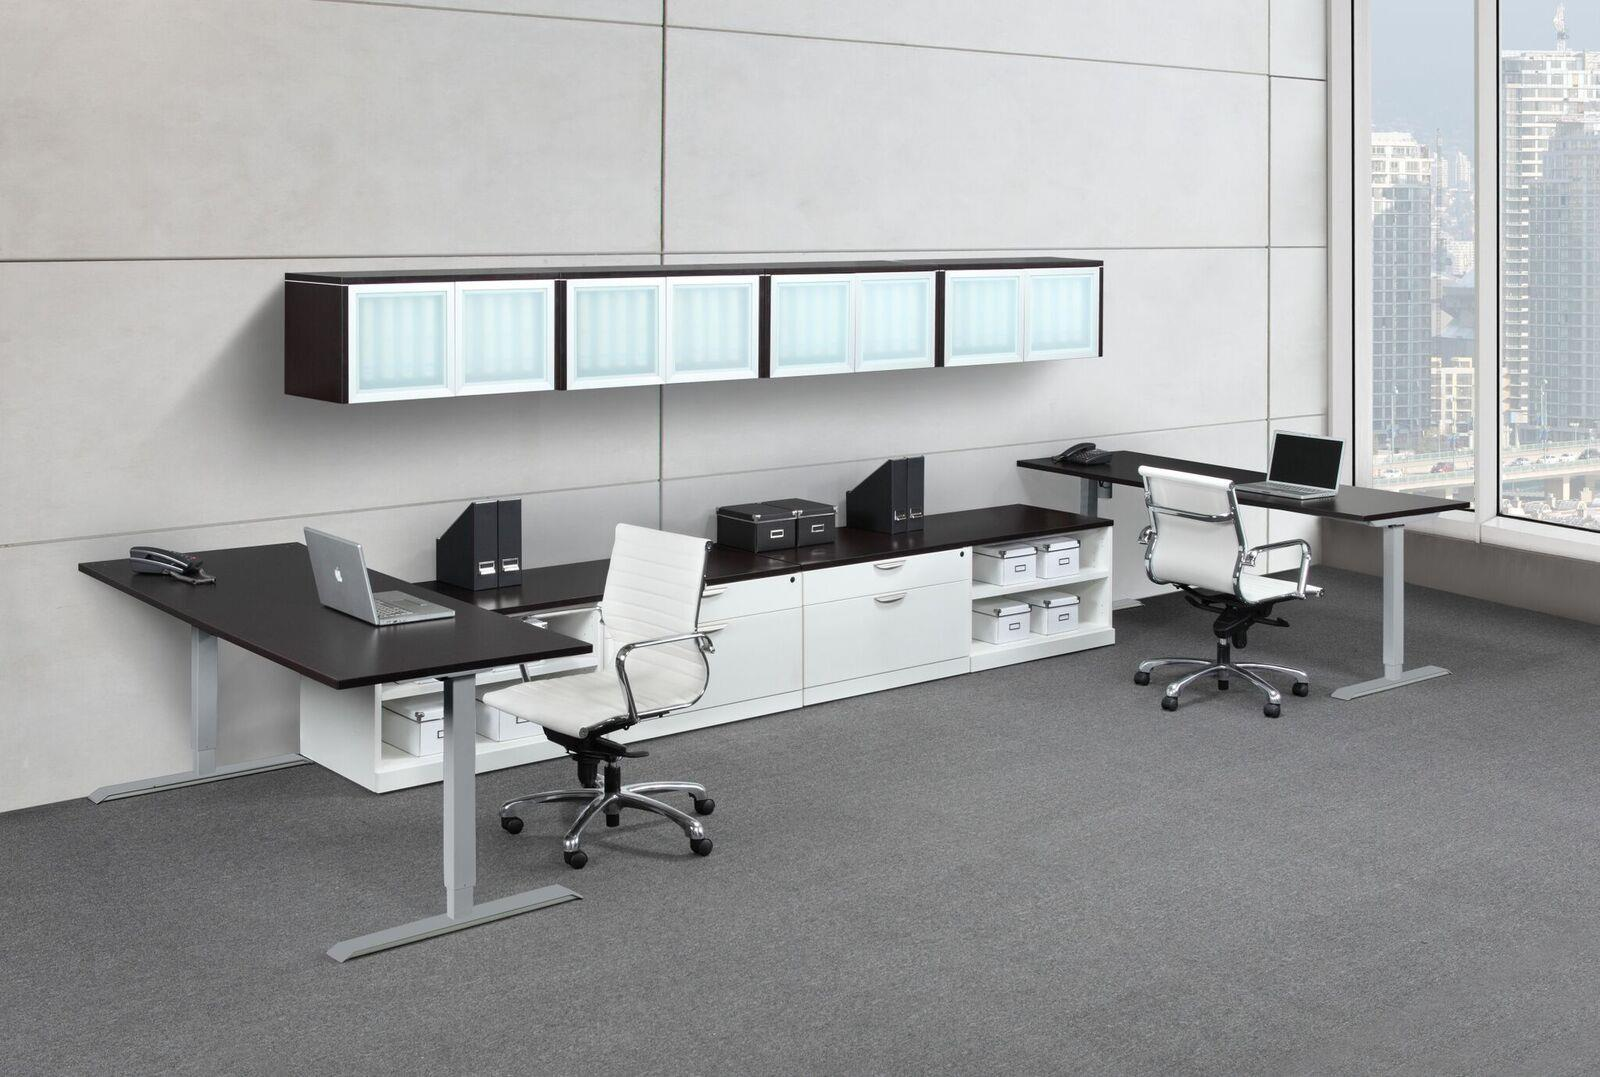 sit stand products affordable office furniture and supplies rh affordableof com affordable office furniture carol stream affordable office furniture ontario ca